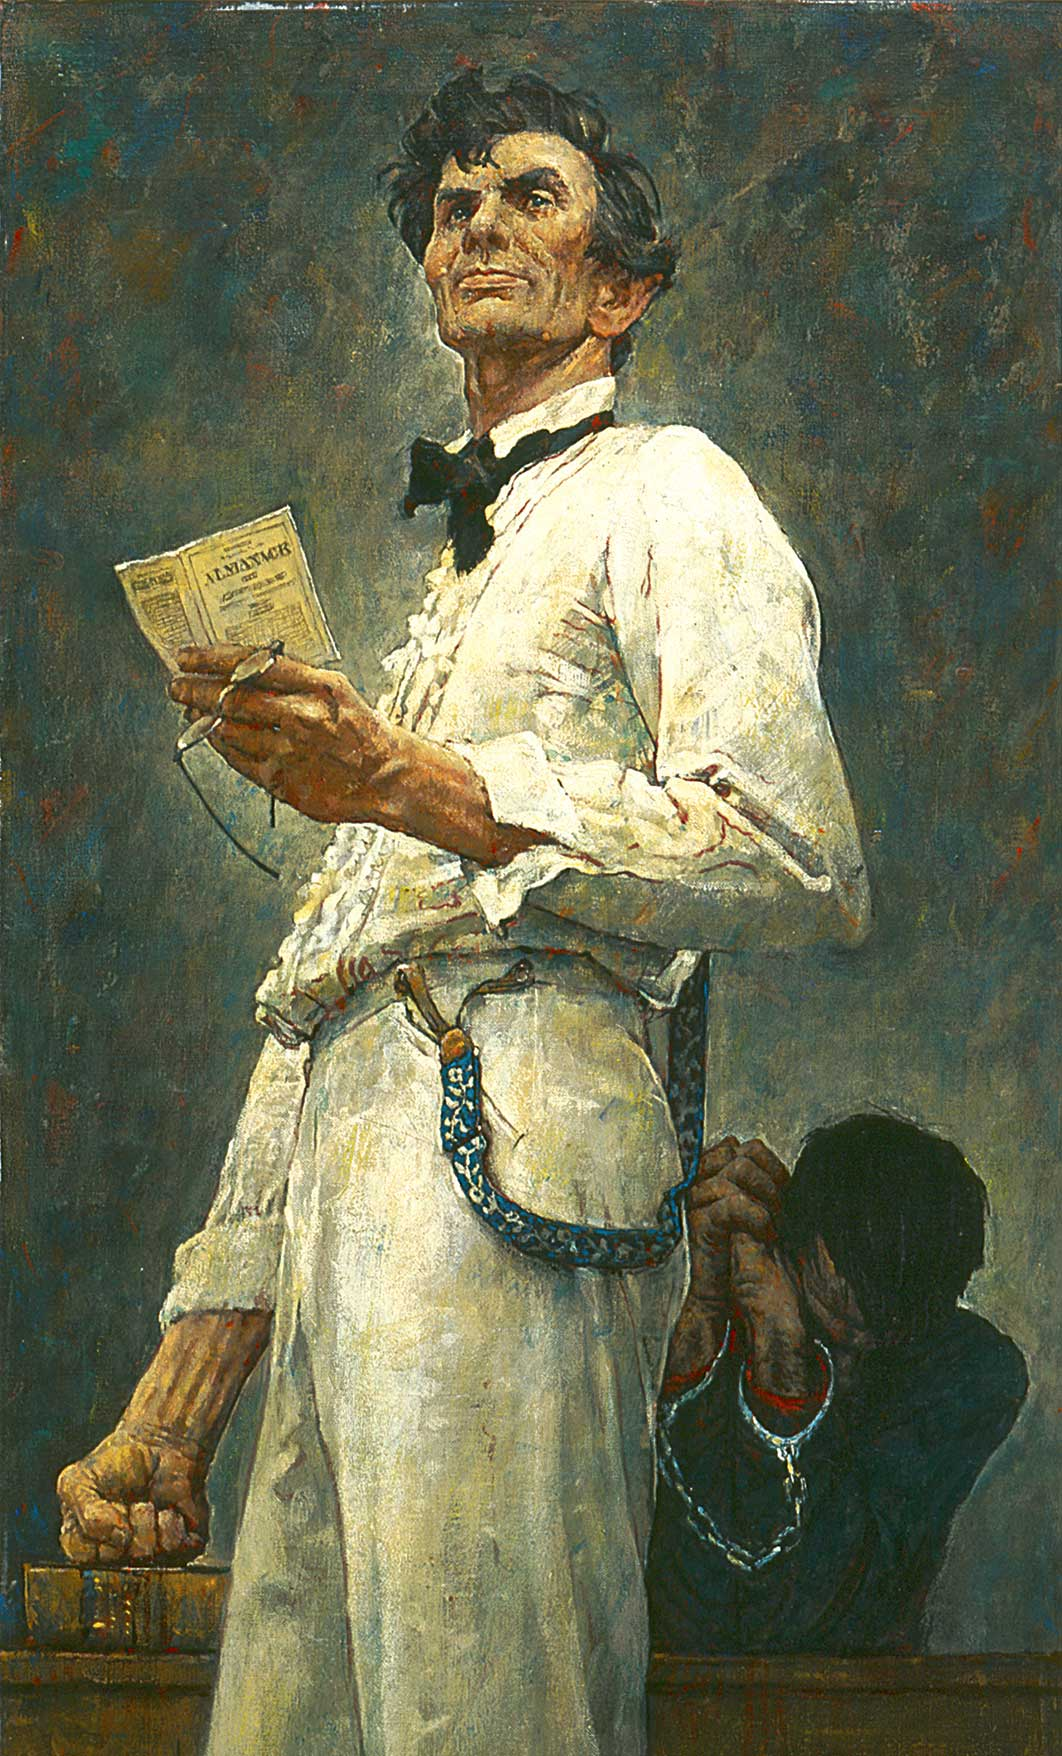 Quot Lincoln For The Defense Quot Norman Rockwell 1961 Norman